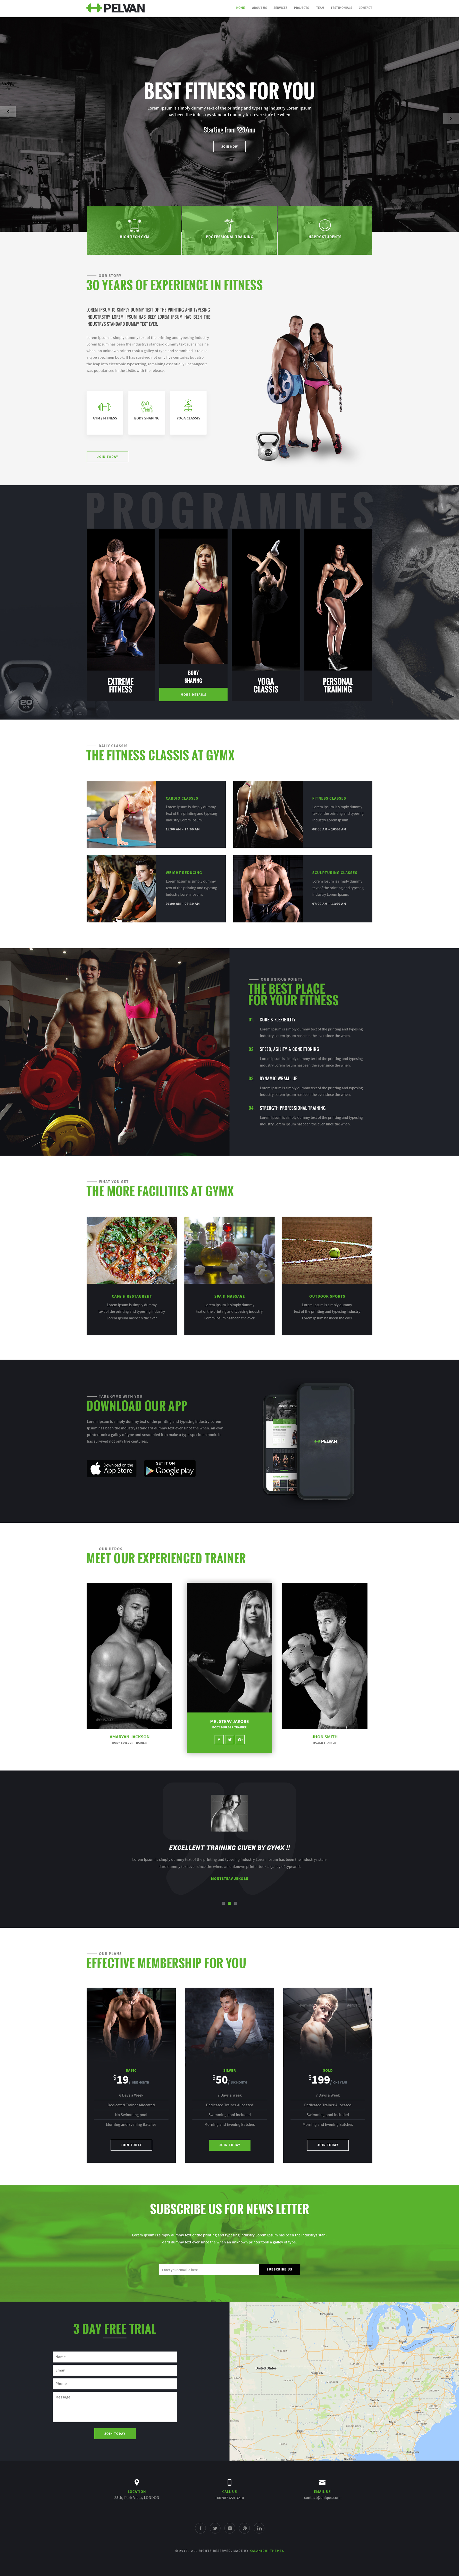 PELVAN - Gym and Fitness Landing Page HTML Template by Kalanidhithemes